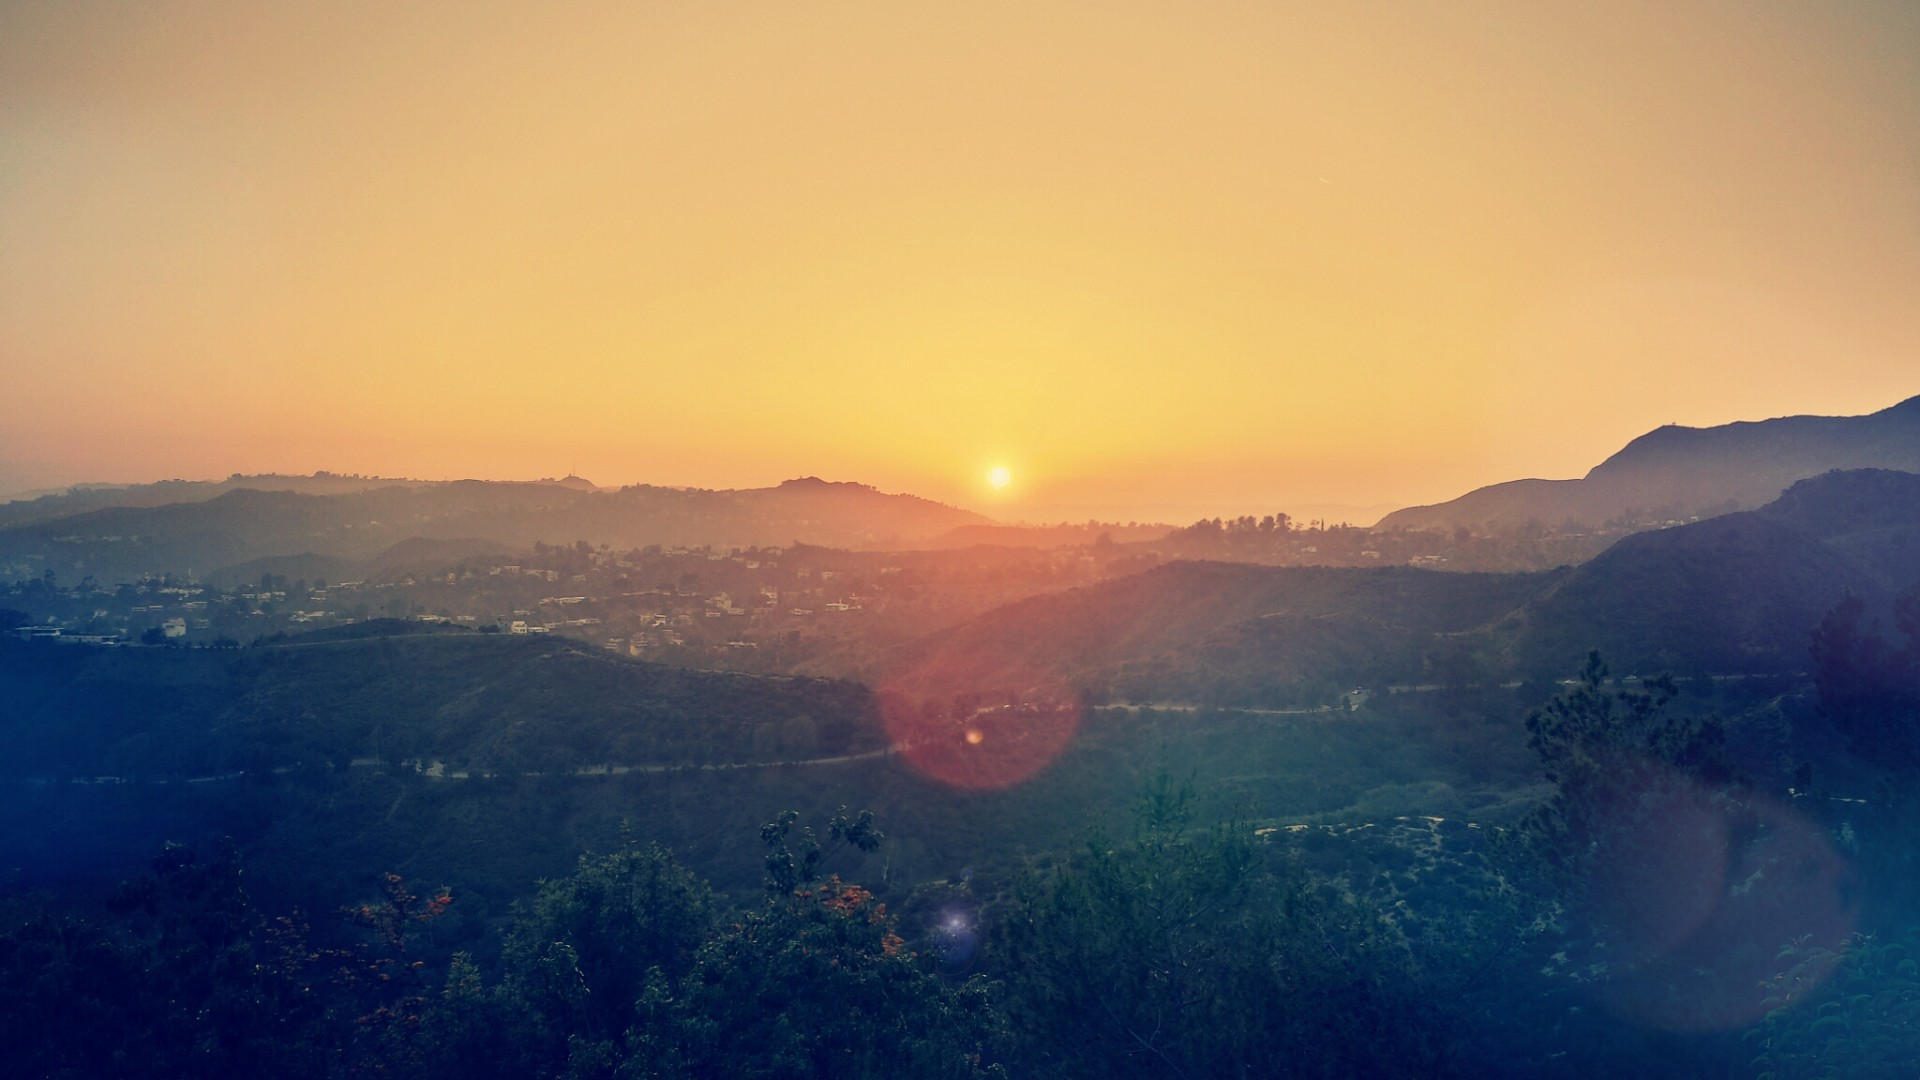 Things to do in Milpitas CA